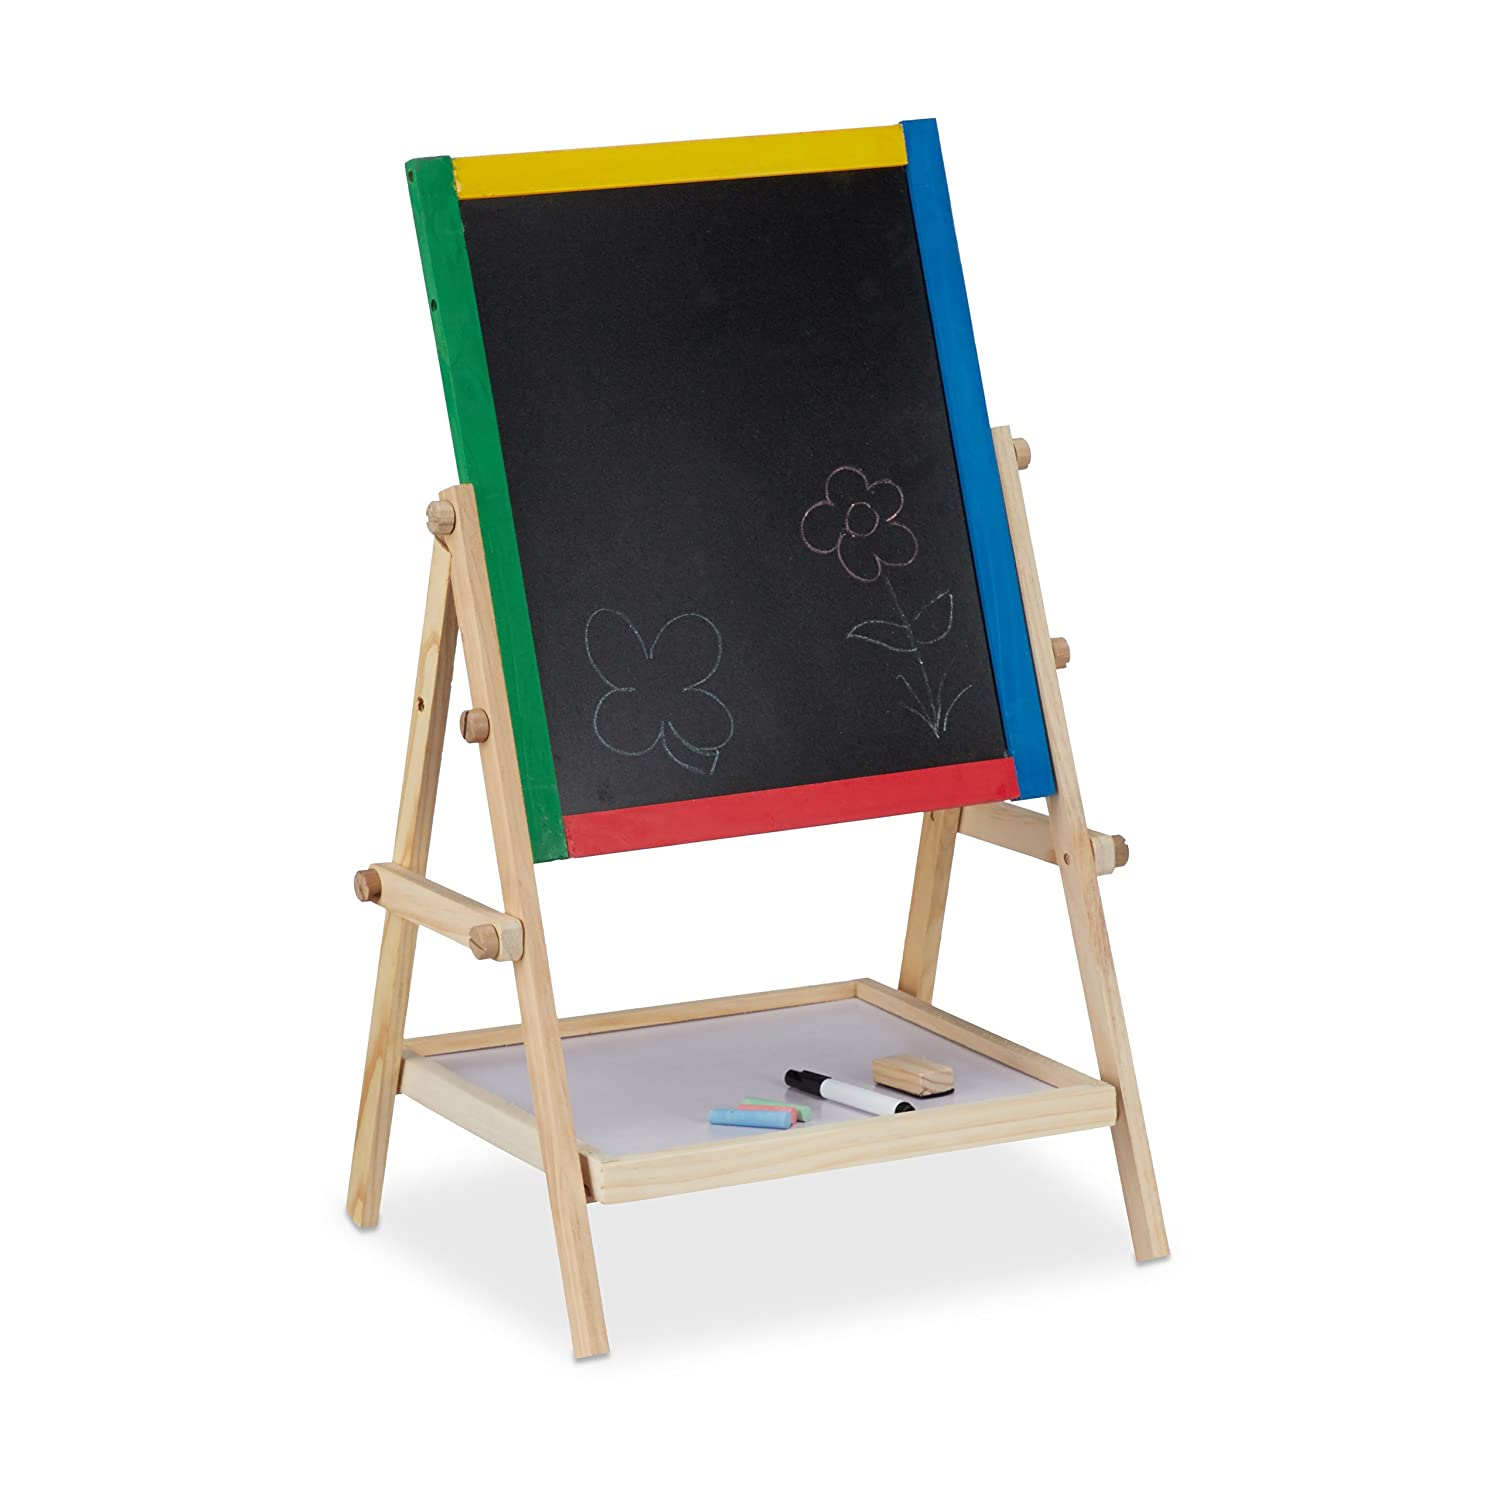 Relaxdays 10021988 Blackboard for Children, Chalkboard with Chalk and Marker, Magnetic Easel HxWxD: 64 x 40 x 32 cm, Colourful